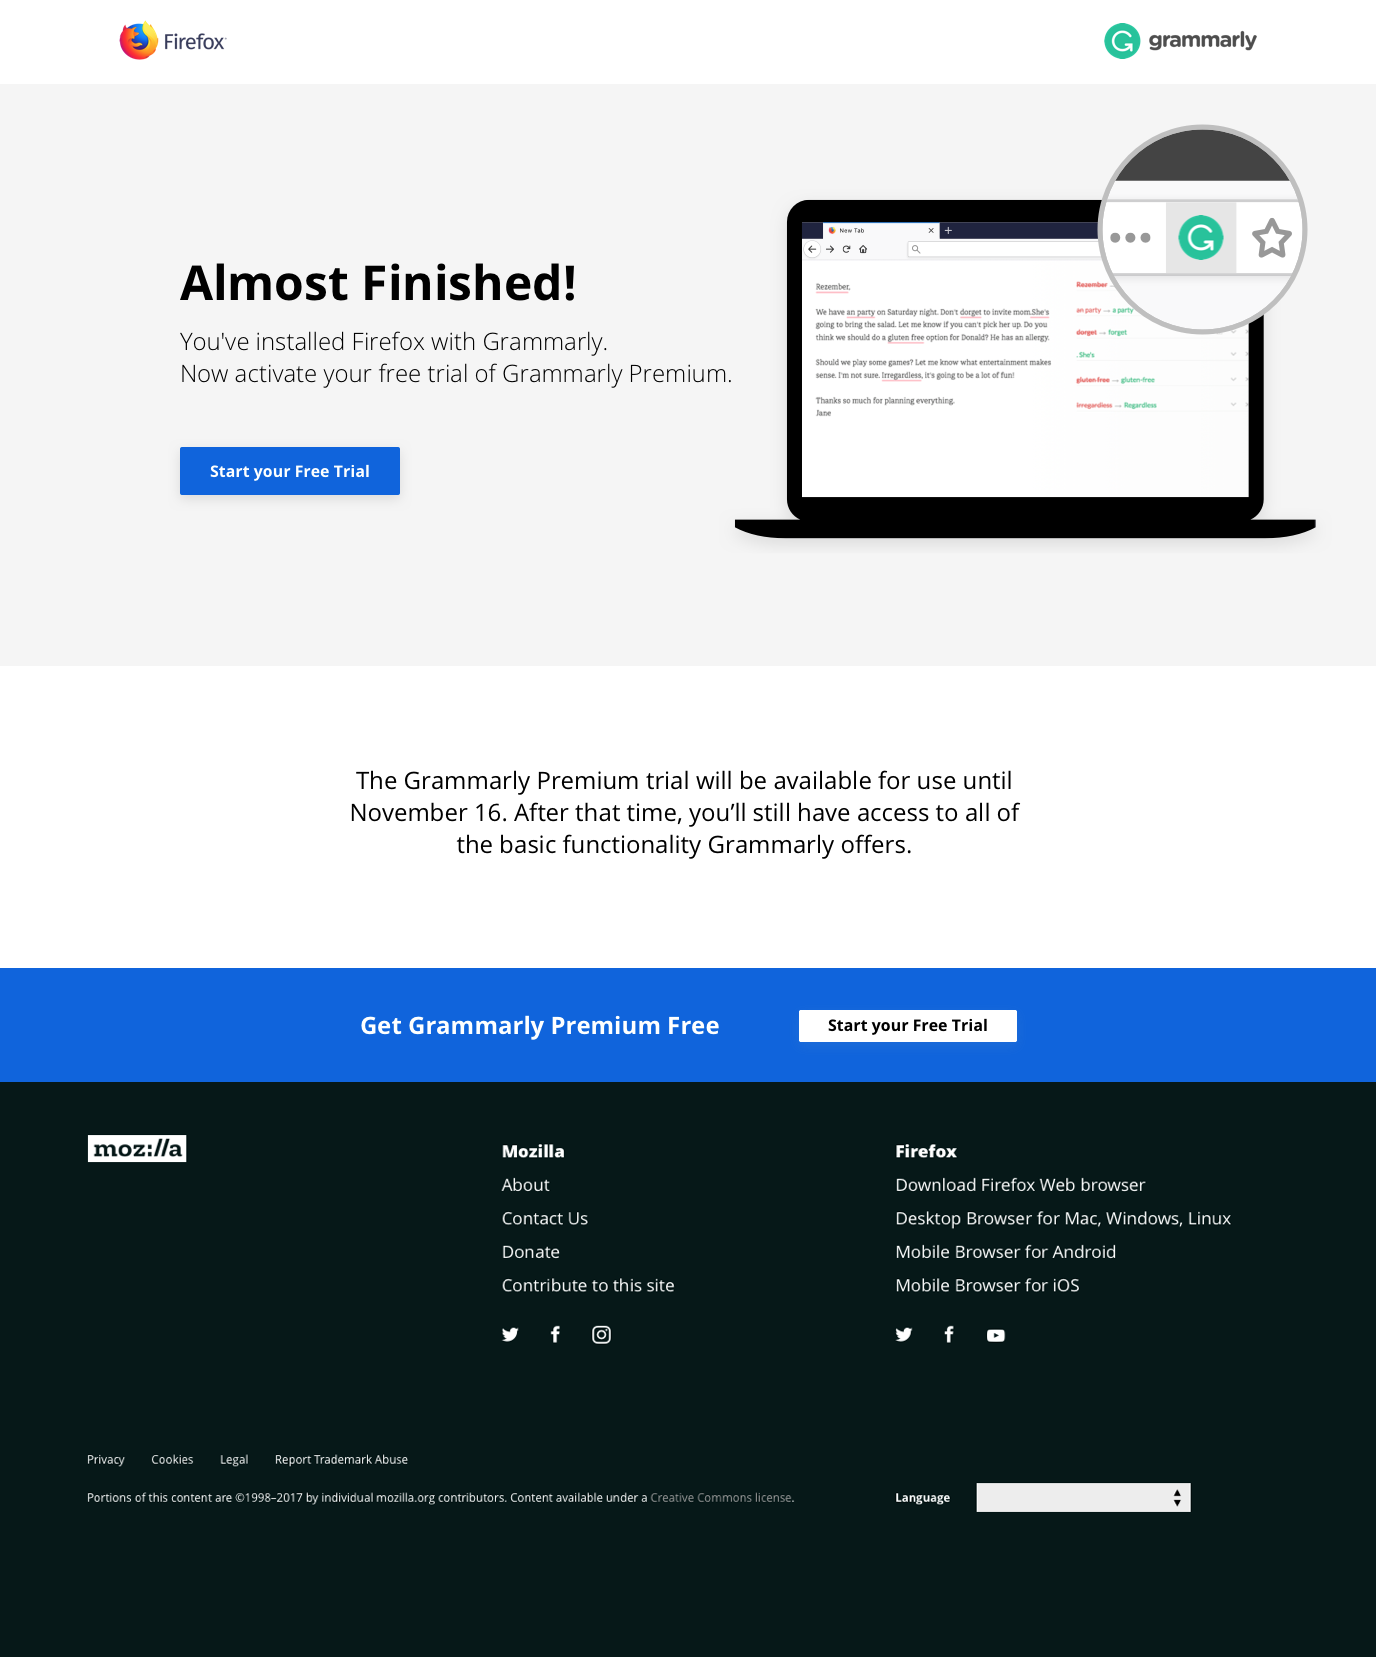 Go live mid Feb (19) 2019] Grammarly Bundle support (landing page